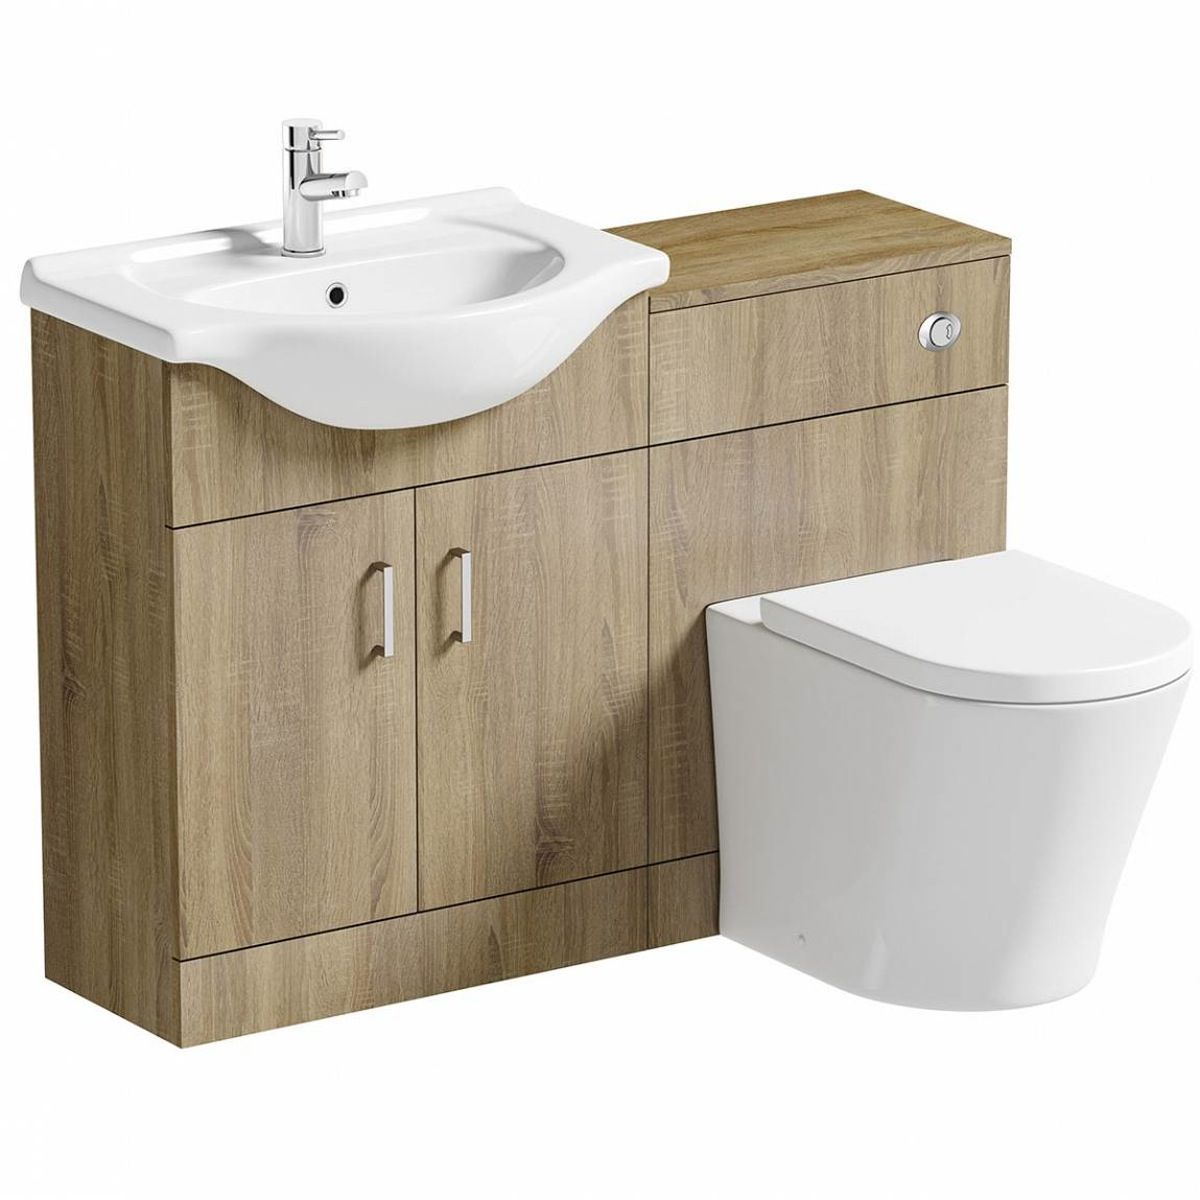 Sienna oak combination unit and arte back to wall toilet - Combination vanity units for bathrooms ...